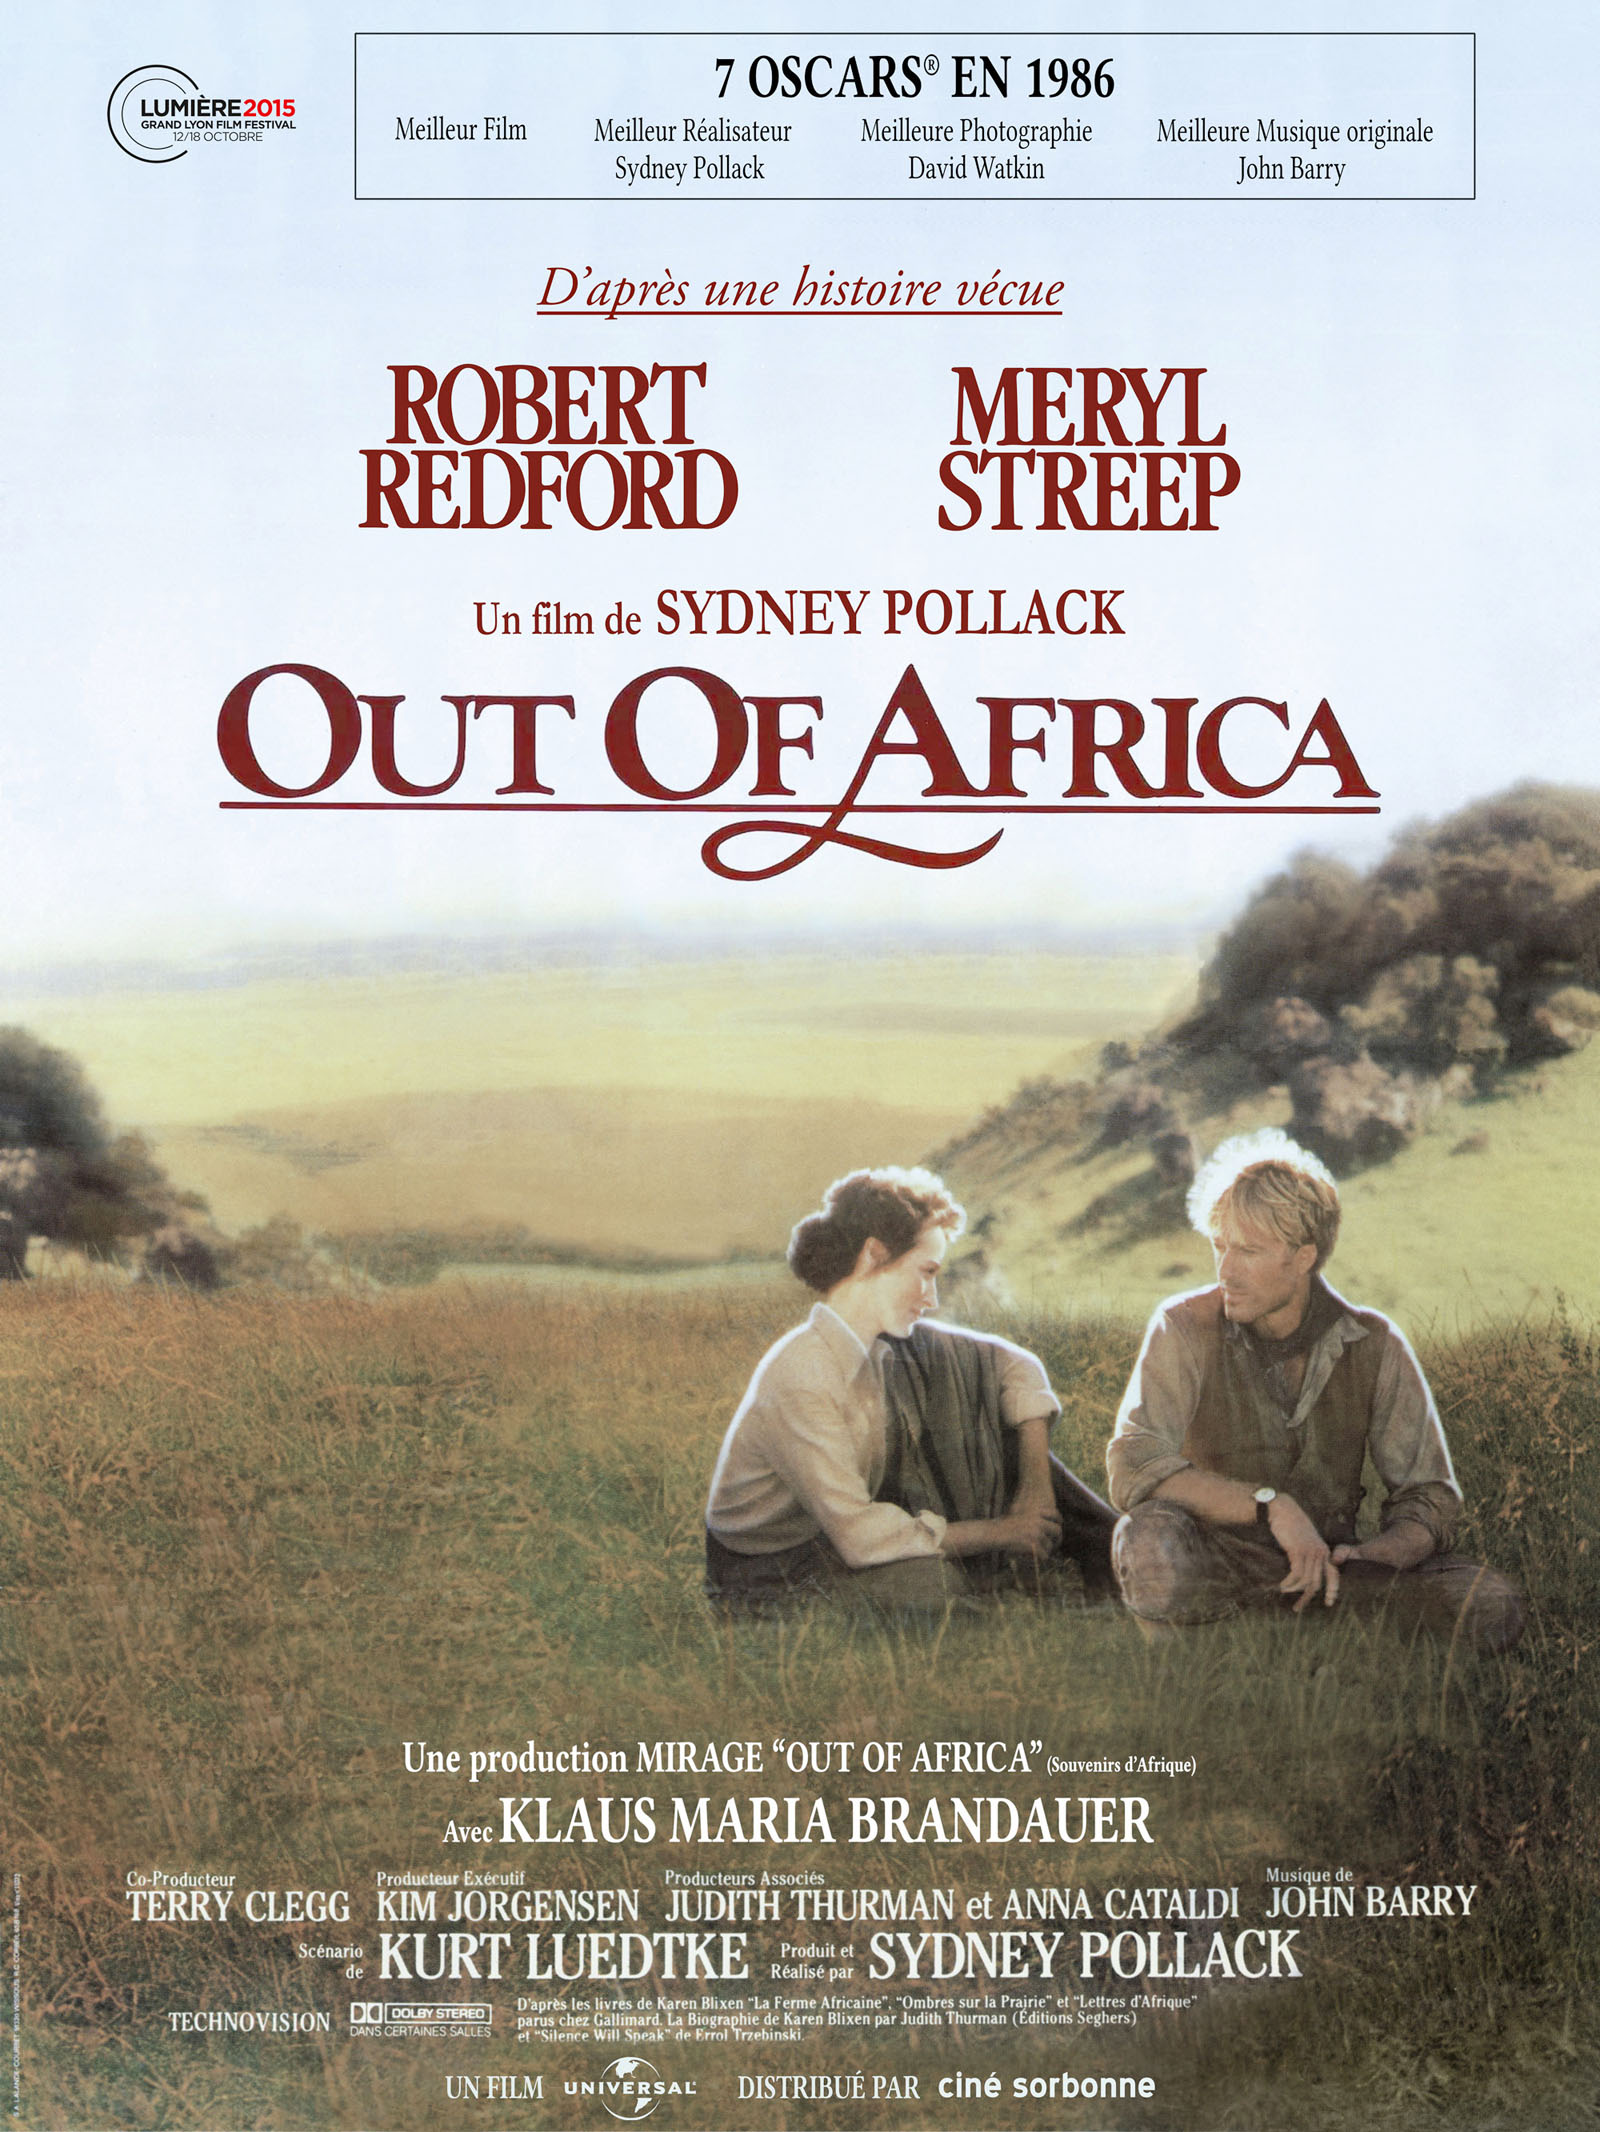 Out of Africa - Souvenirs d'Afrique en Blu Ray : Out of Africa - AlloCiné